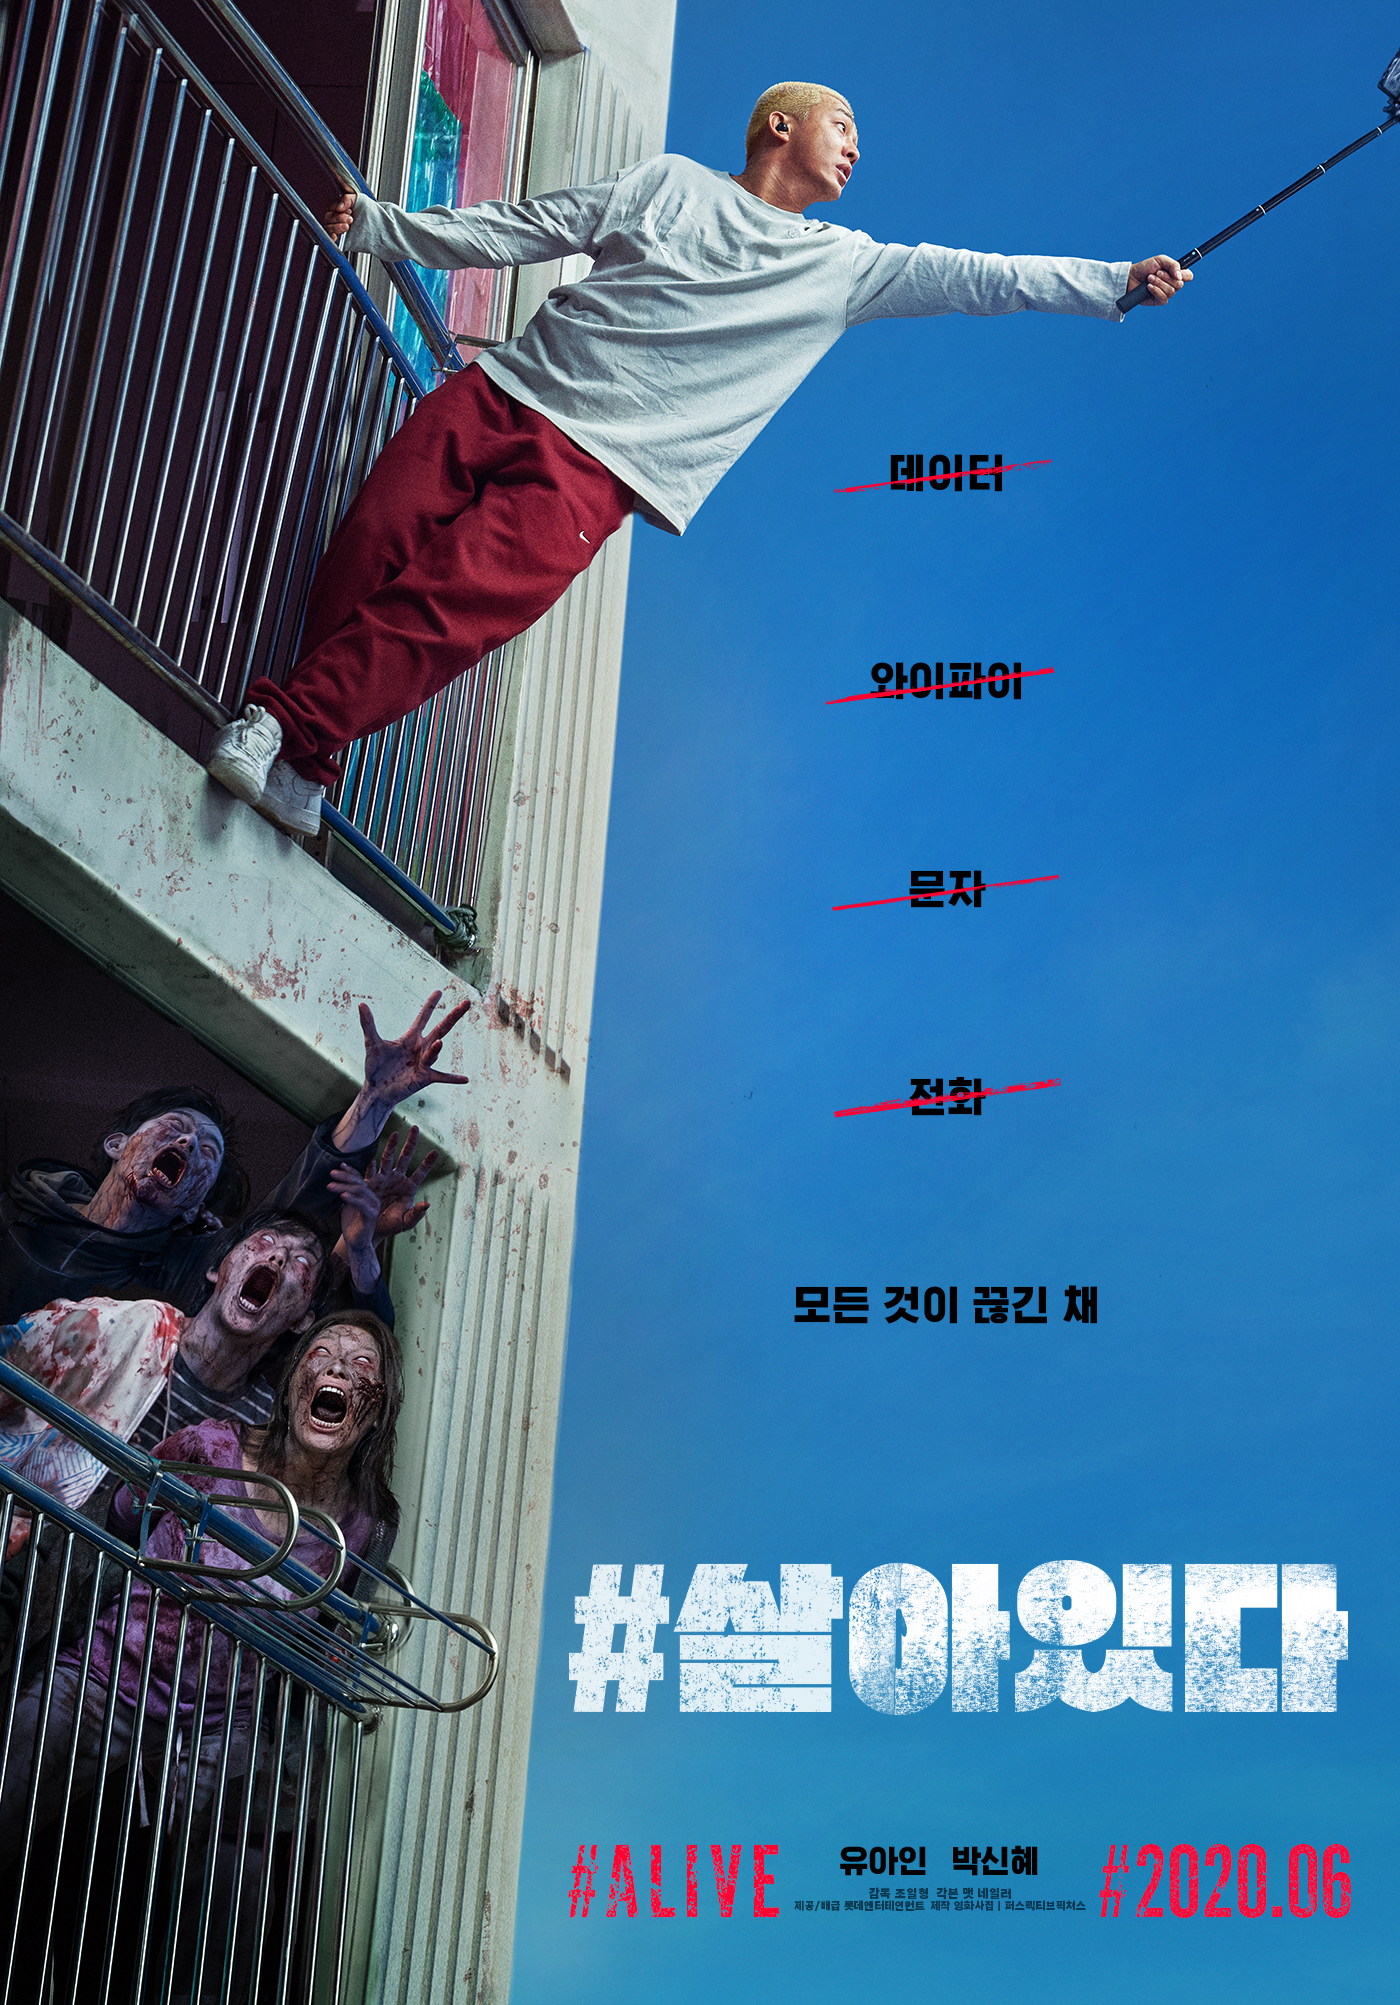 Spackman Entertainment Groups Upcoming Movie ALIVE Starring Yoo Ah-in of Spackman Media Group and Park Shin-hye To Be Released in Korea on 24 June 2020